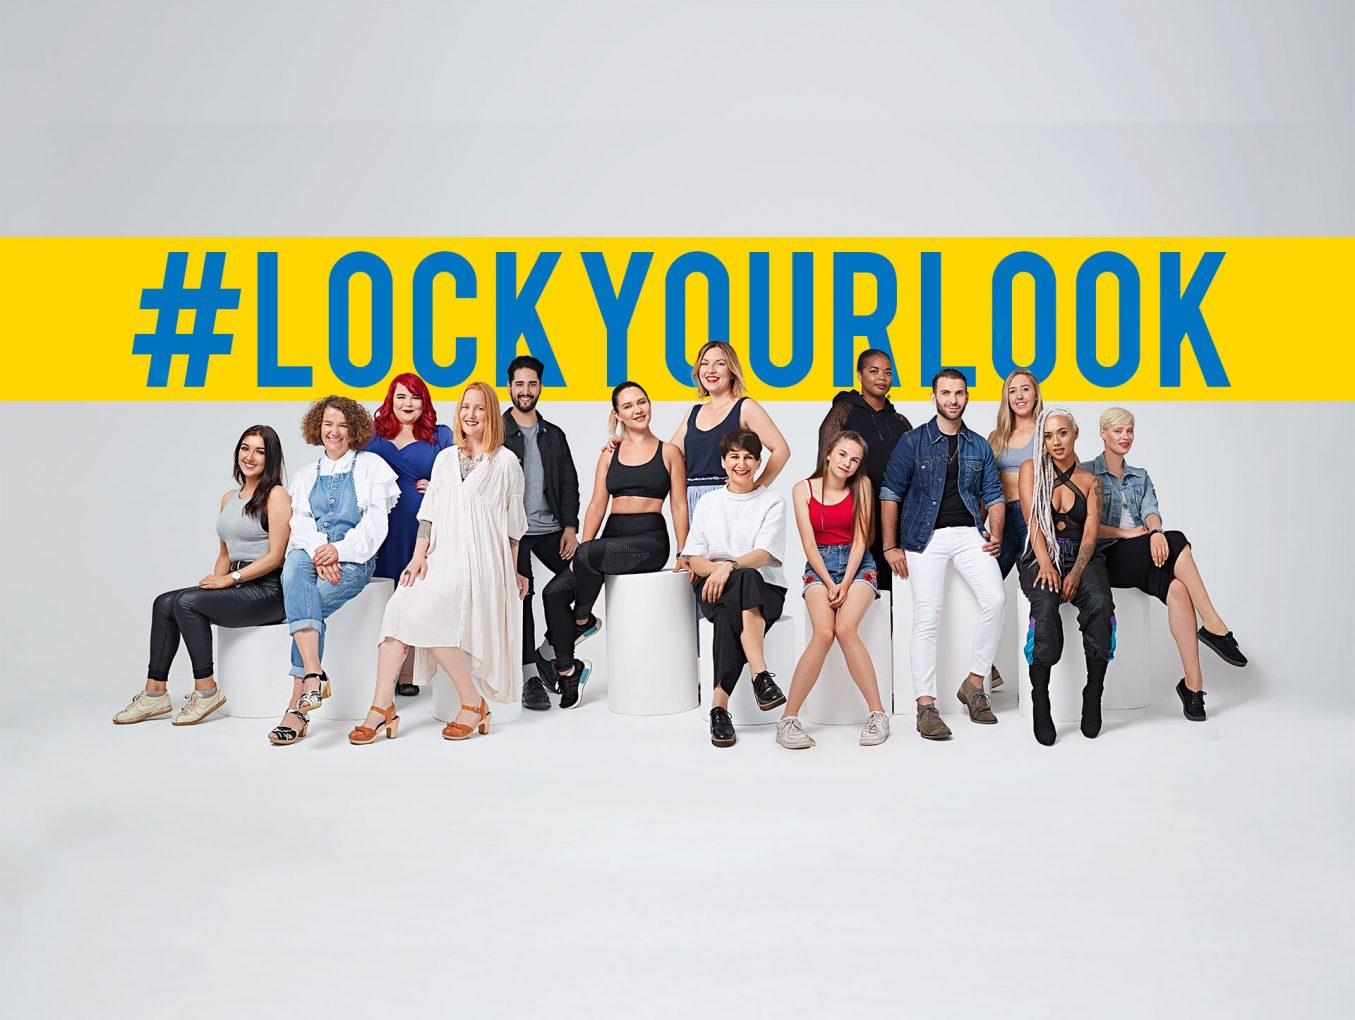 #LOCKYOURLOOK